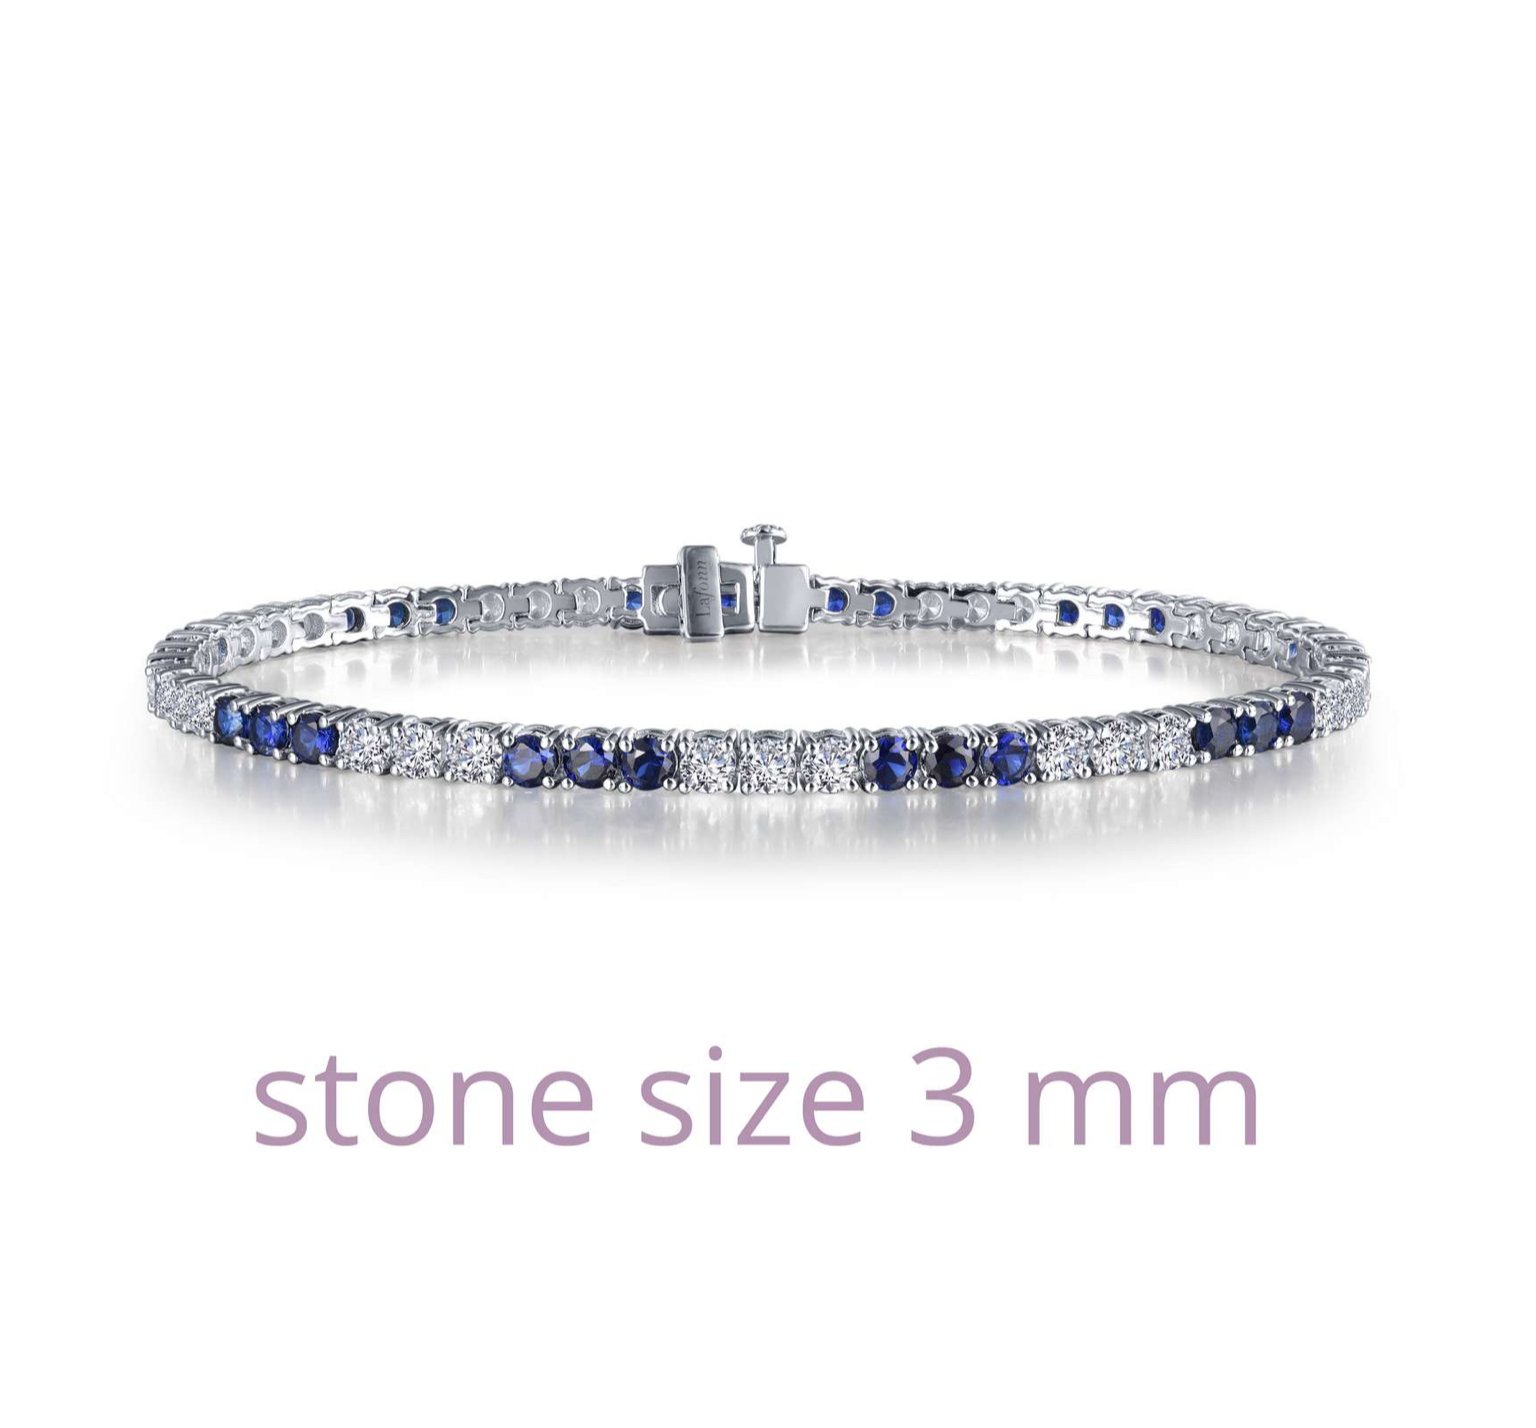 ALTERNATING TENNIS BRACELET